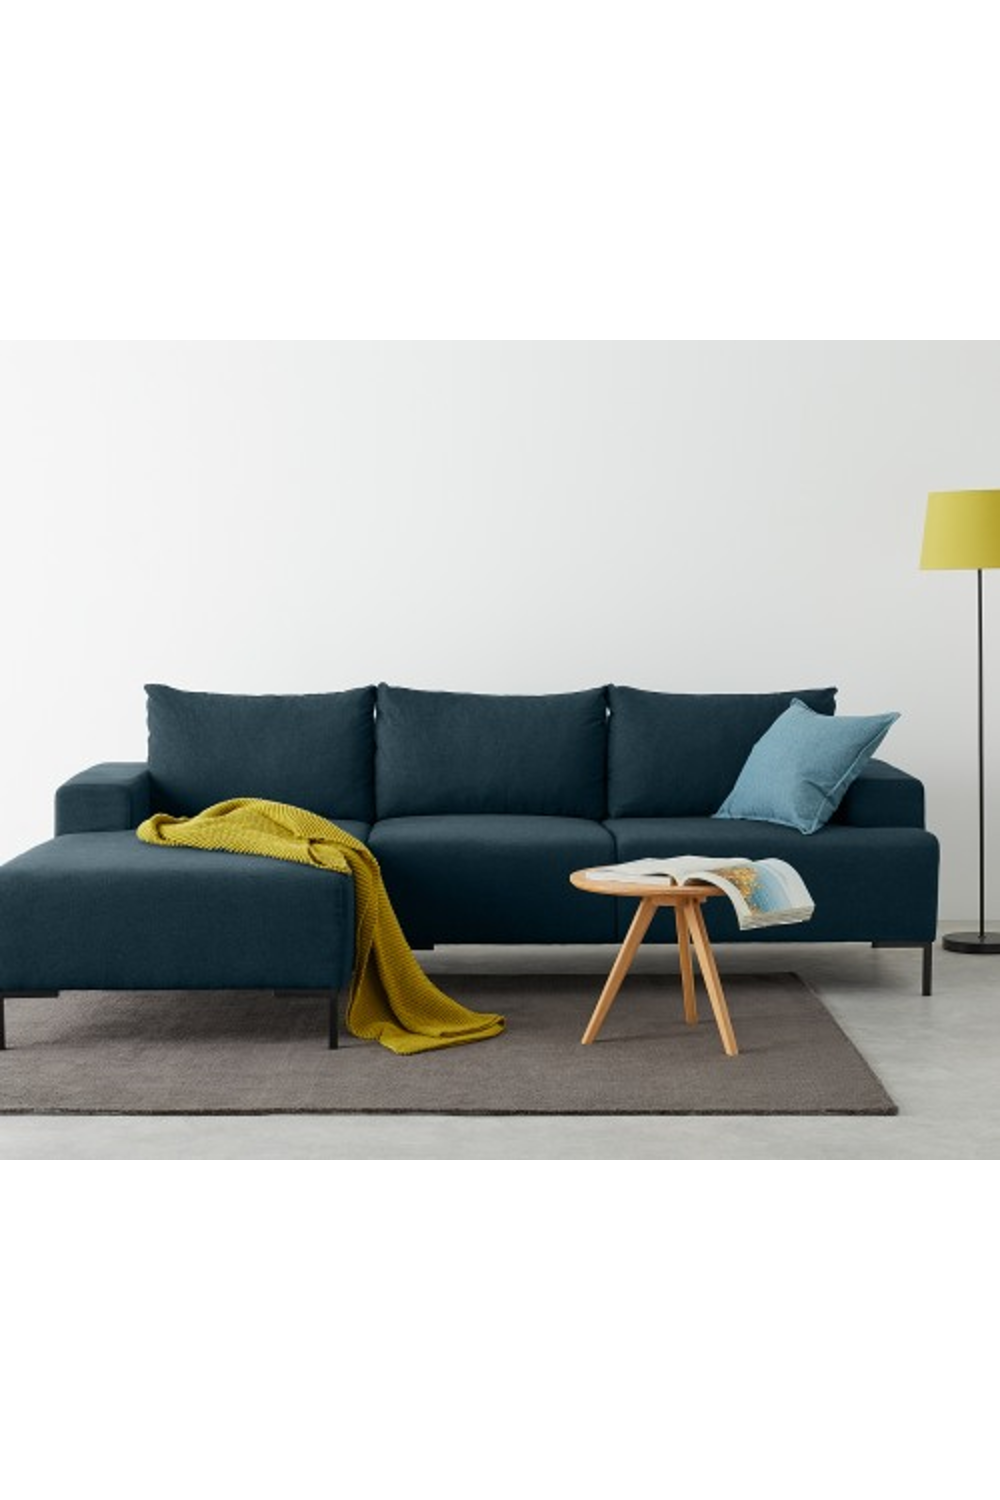 Made Aegean Blue Corner Sofa In 2020 Blue Corner Sofas Sofa Corner Sofa